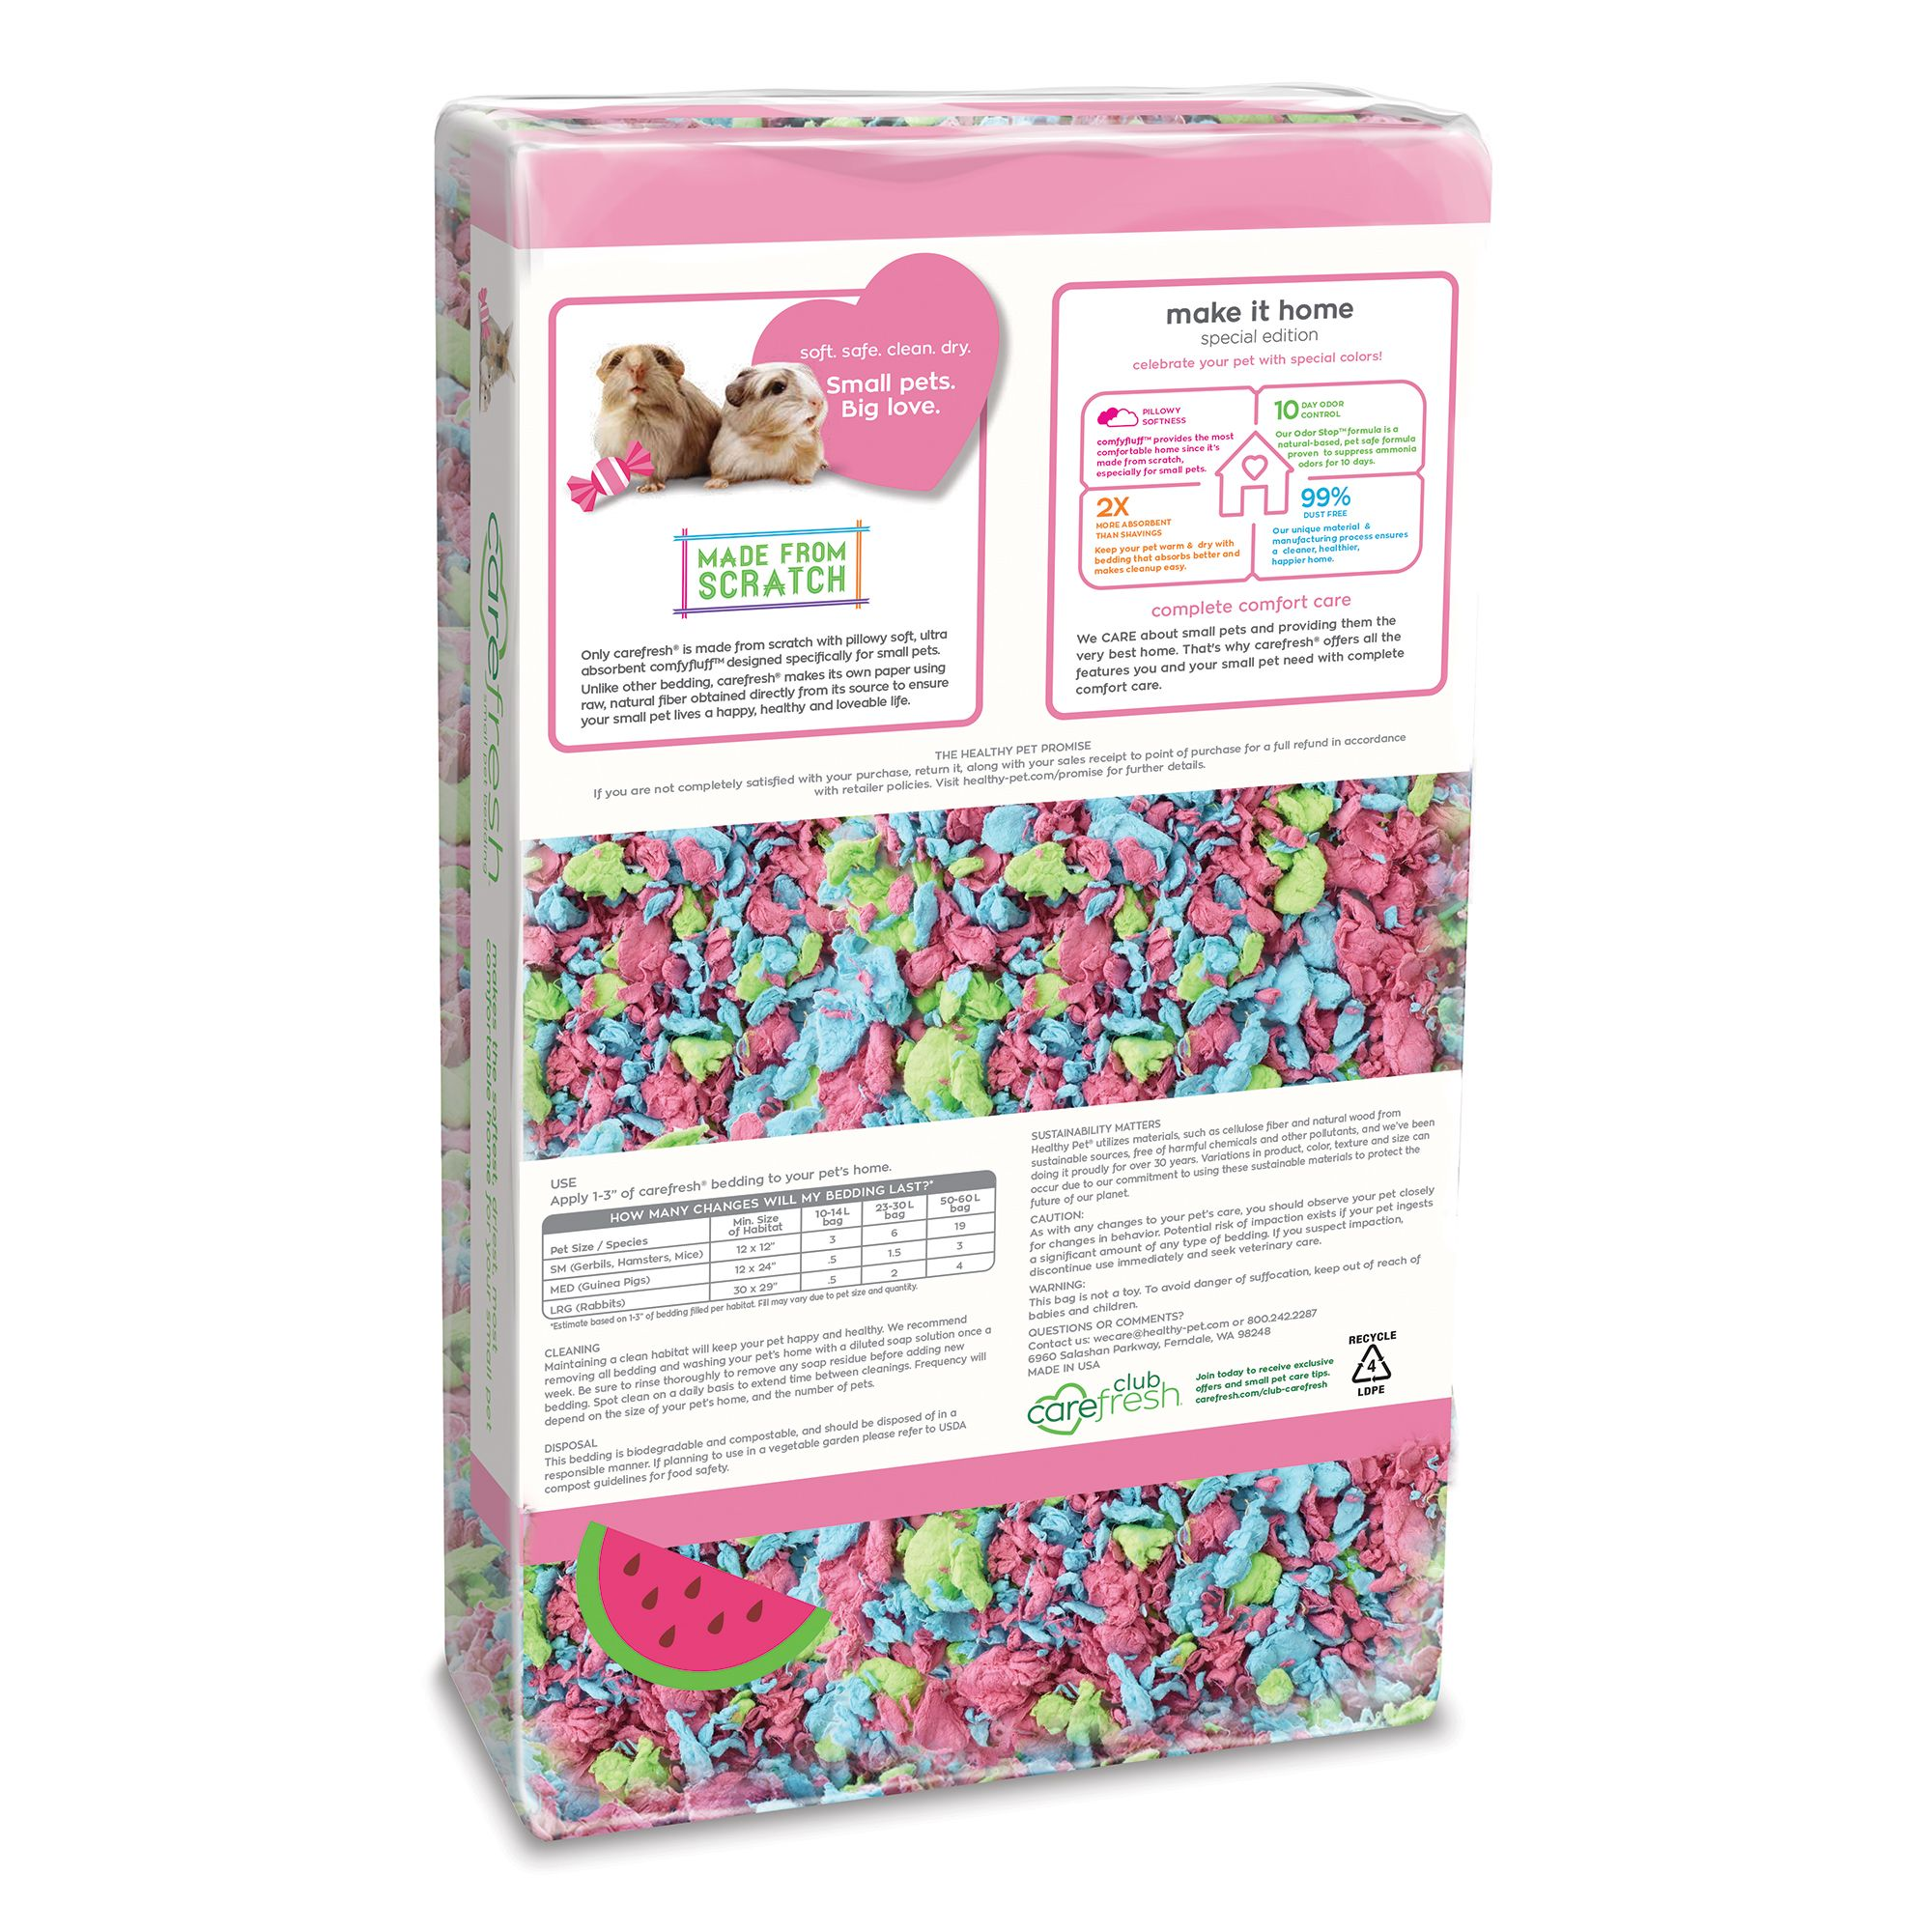 carefresh bedding tutti frutti